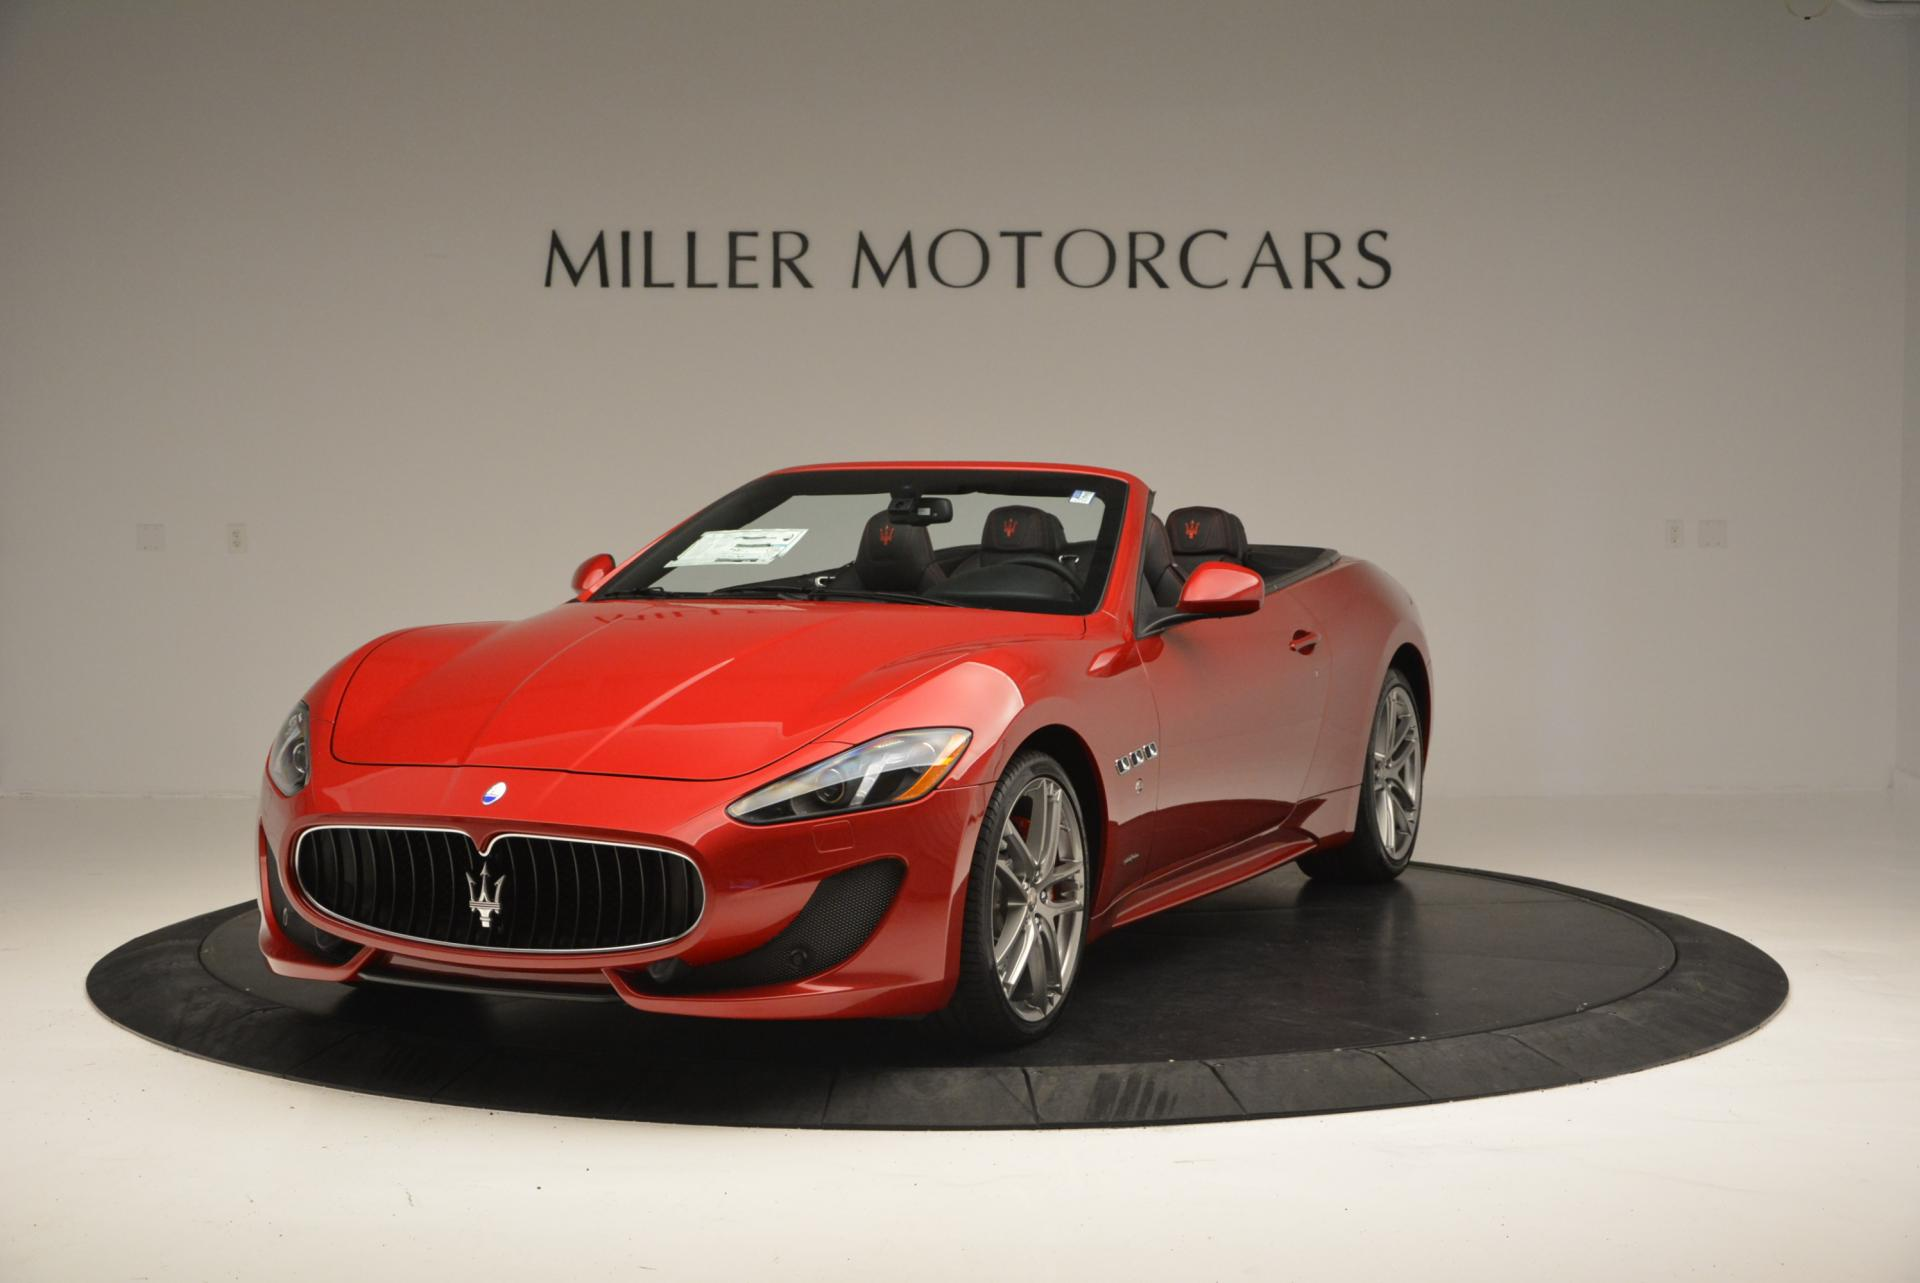 New 2017 Maserati GranTurismo Cab Sport For Sale In Greenwich, CT 152_main